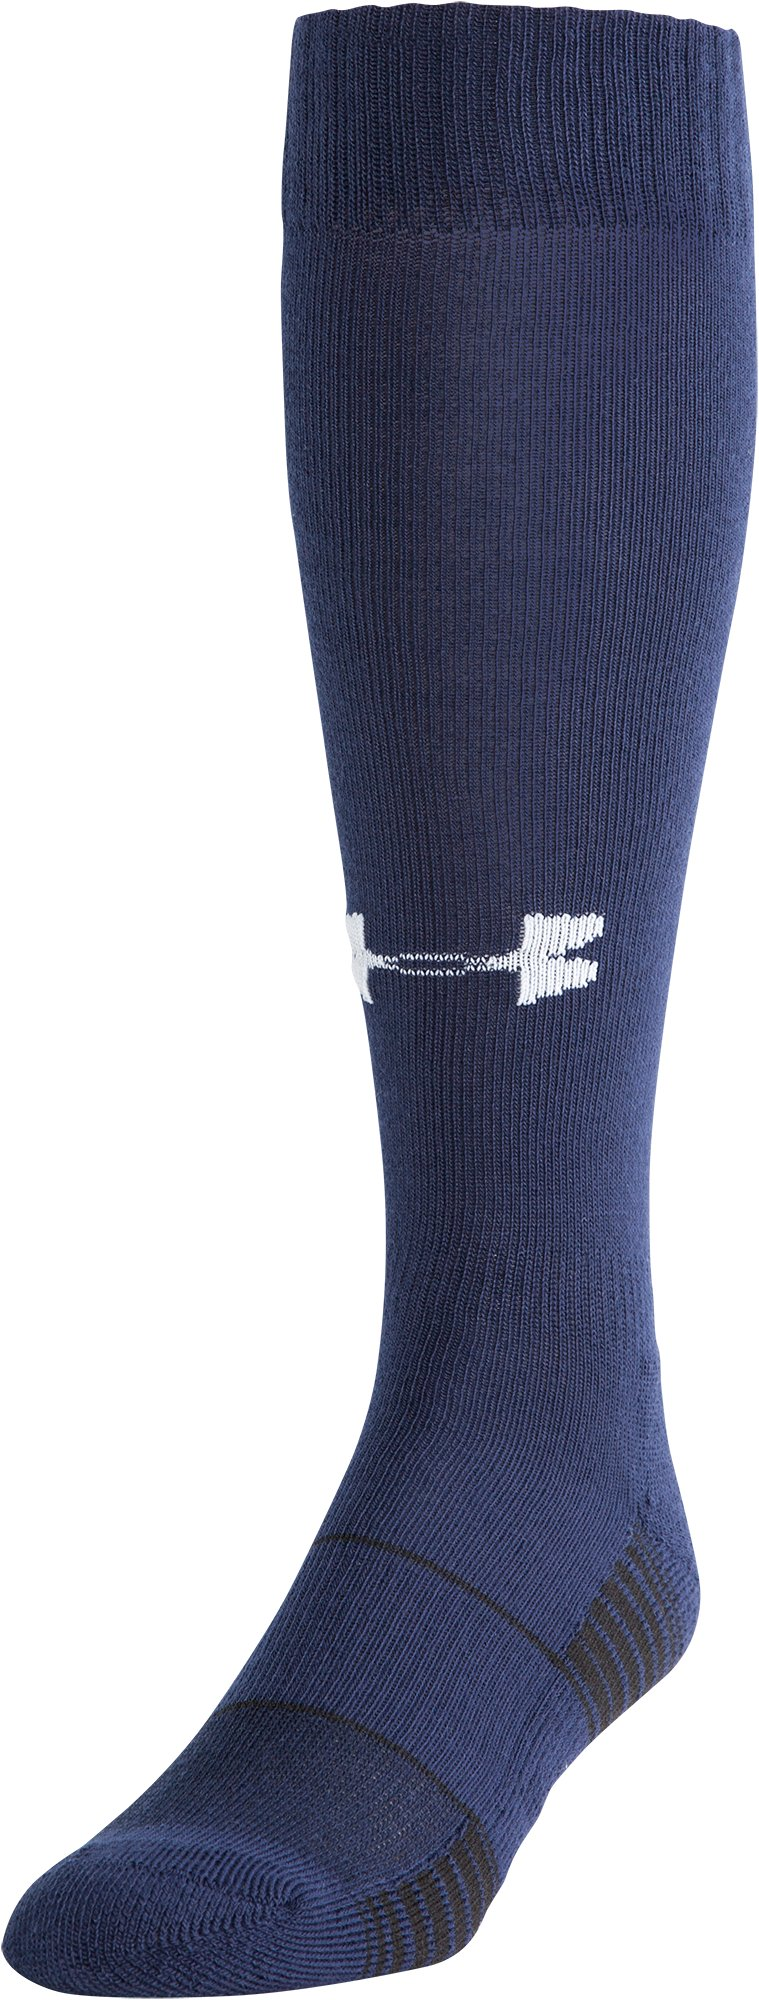 UA Over-The-Calf Team Socks, Midnight Navy, undefined